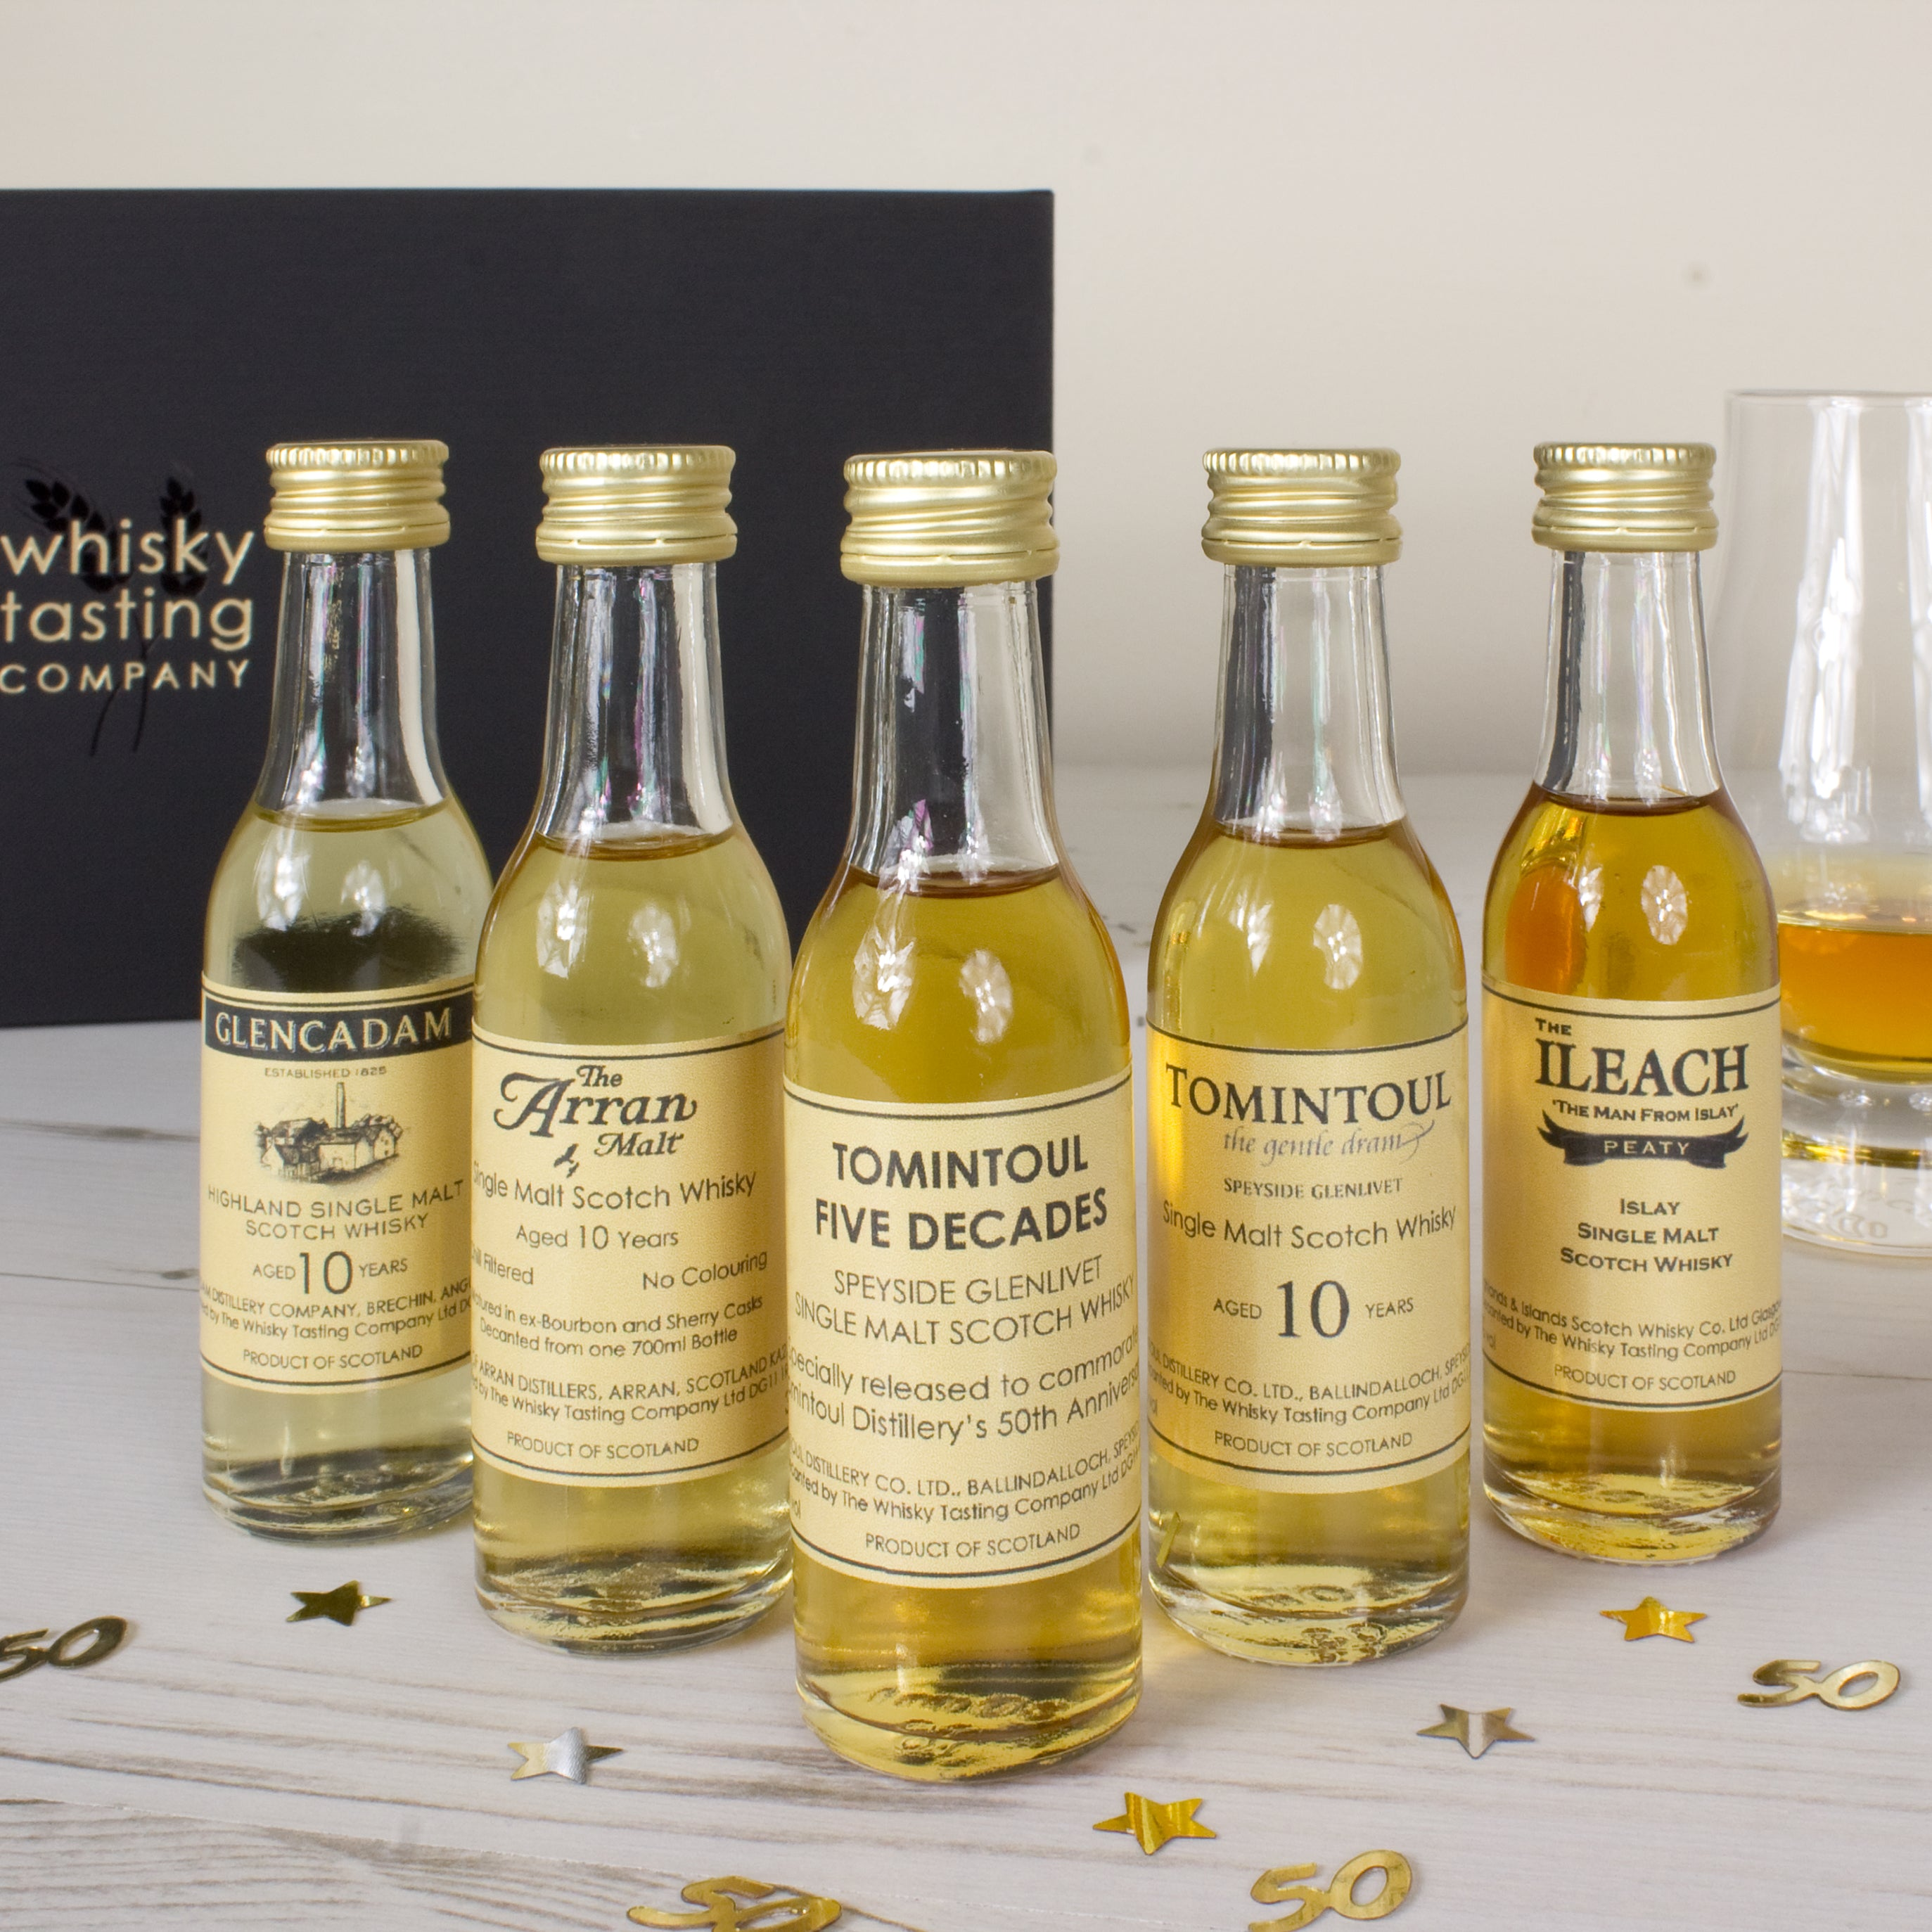 "50 year old birthday whisky gift set bottles - ""Five Decades"" Tomintoul Glenlivet single malt, Glencadam aged 10 years, The Arran Malt aged 10 years, Tomintoul aged 10 years and The Ileach Islay single malt."